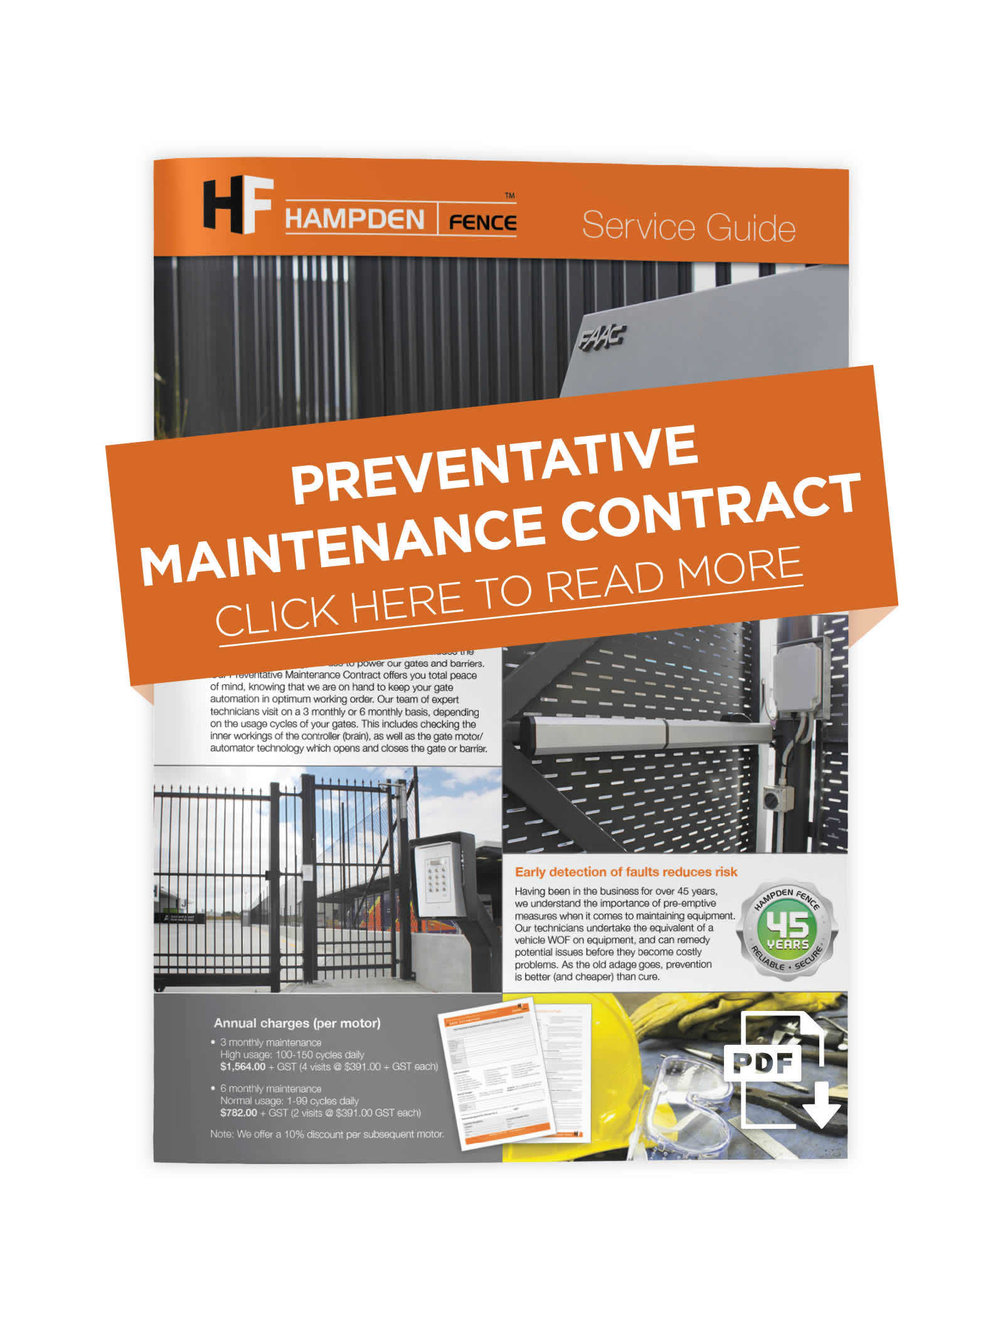 HAM_002672 Preventative maintenance leaflet icon White Background Cropped.jpg